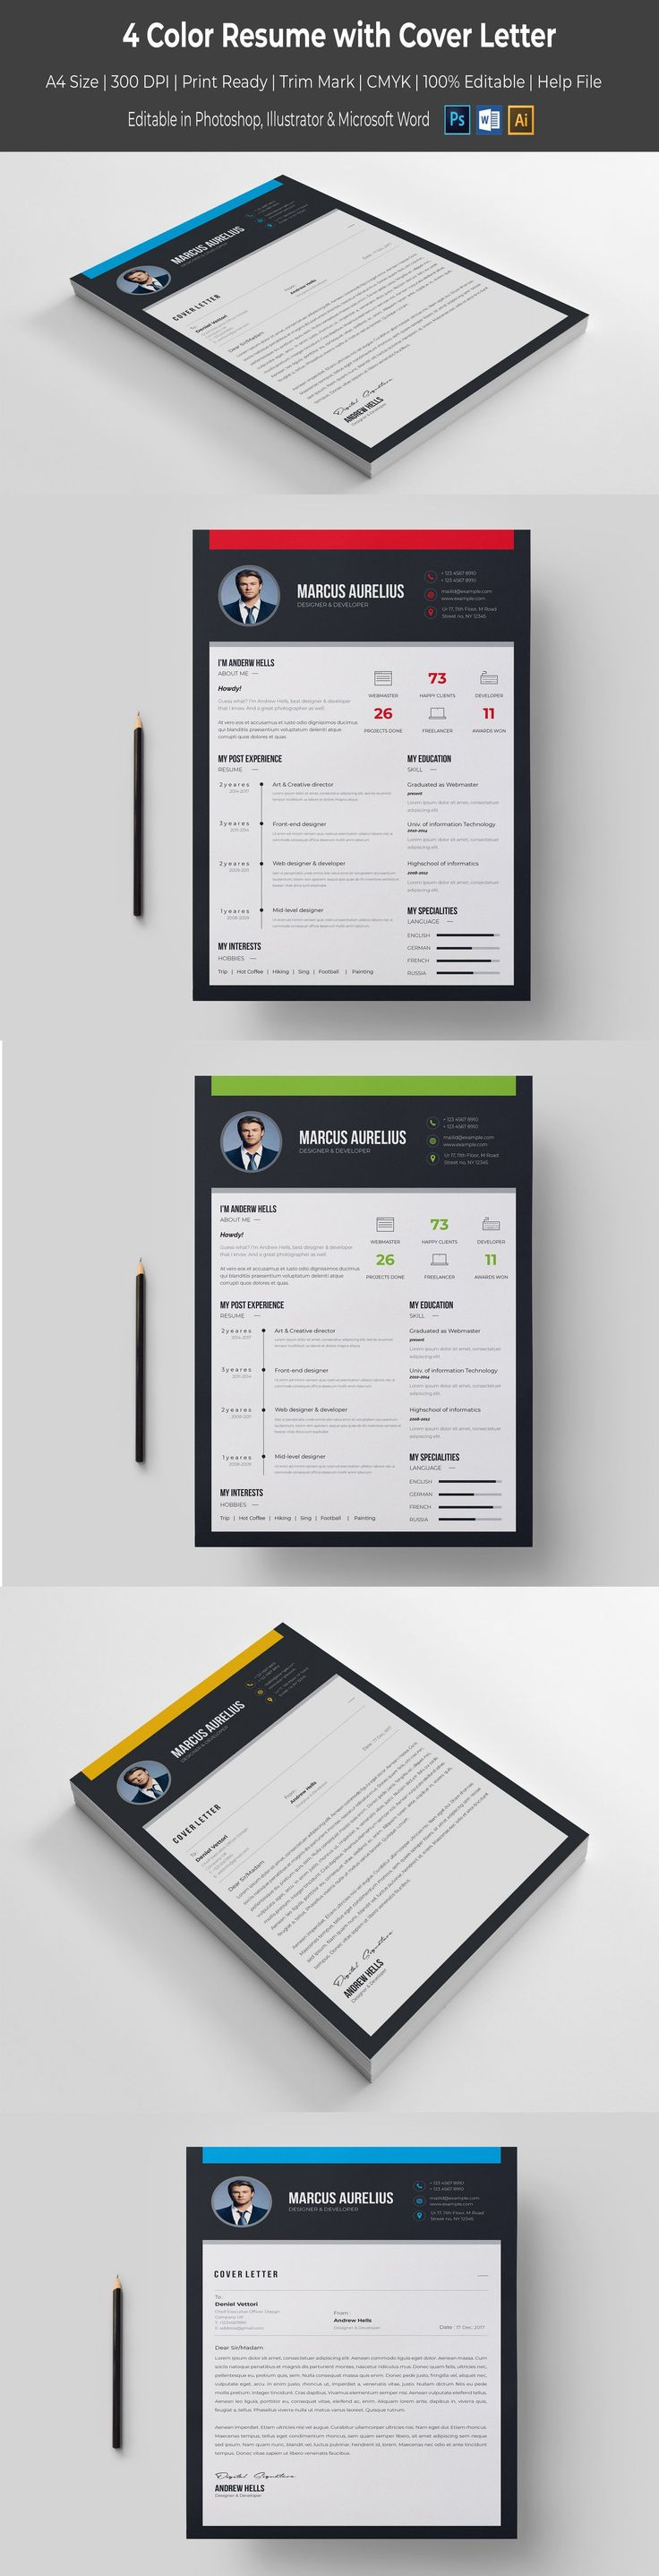 Groß Kostenlos Dreamweaver Cs6 Vorlagen Galerie - Entry Level Resume ...